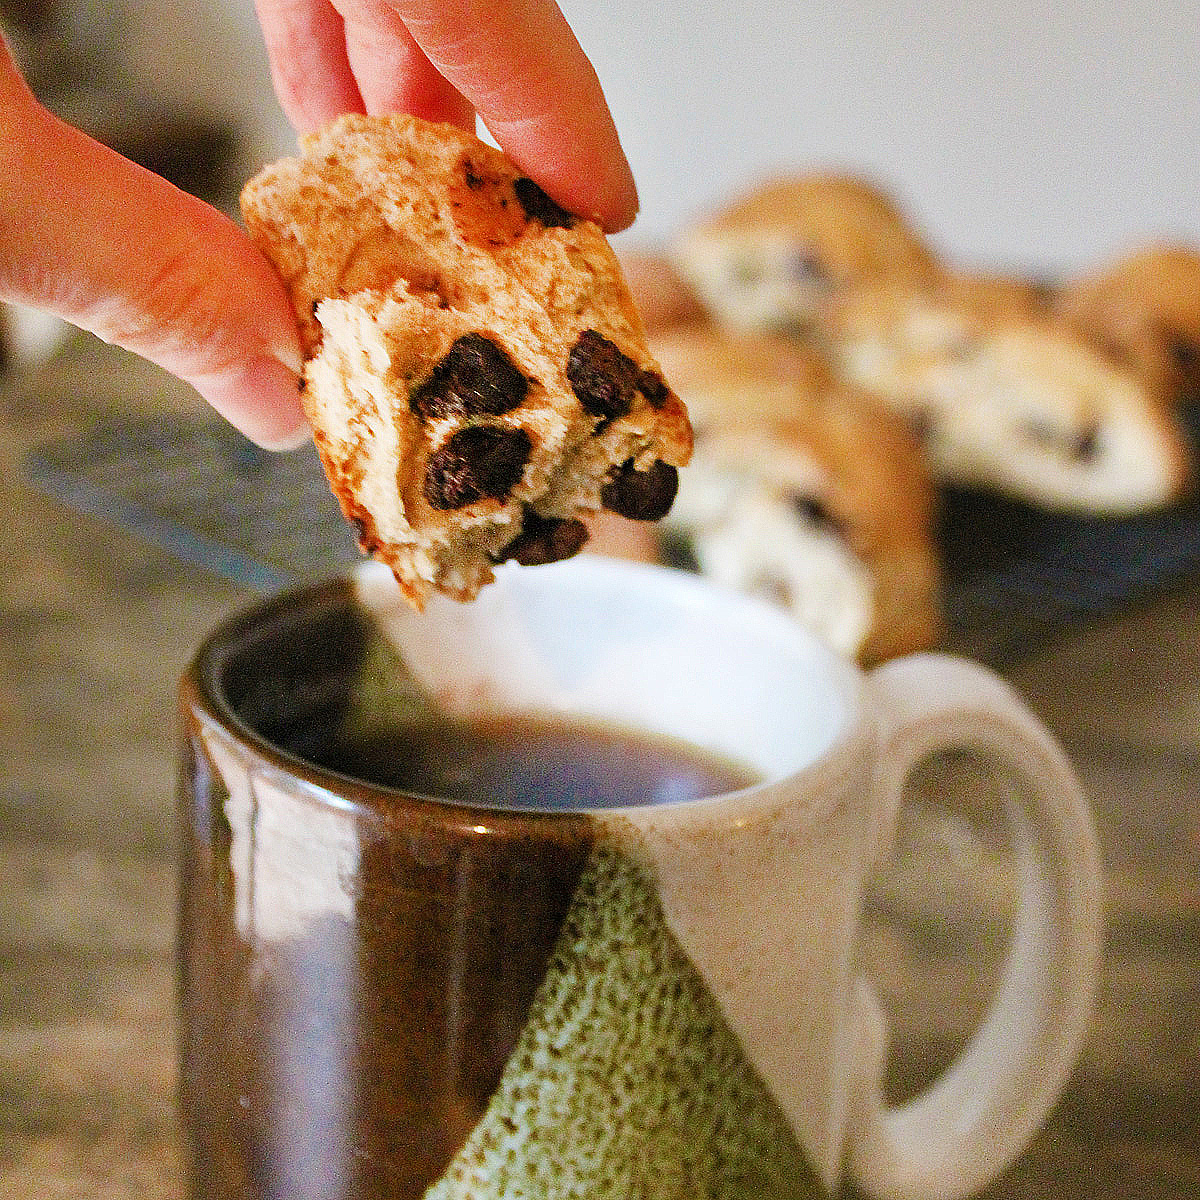 A hand dunks a bite of a chai chocolate chip scone into an earthenware mug of tea.